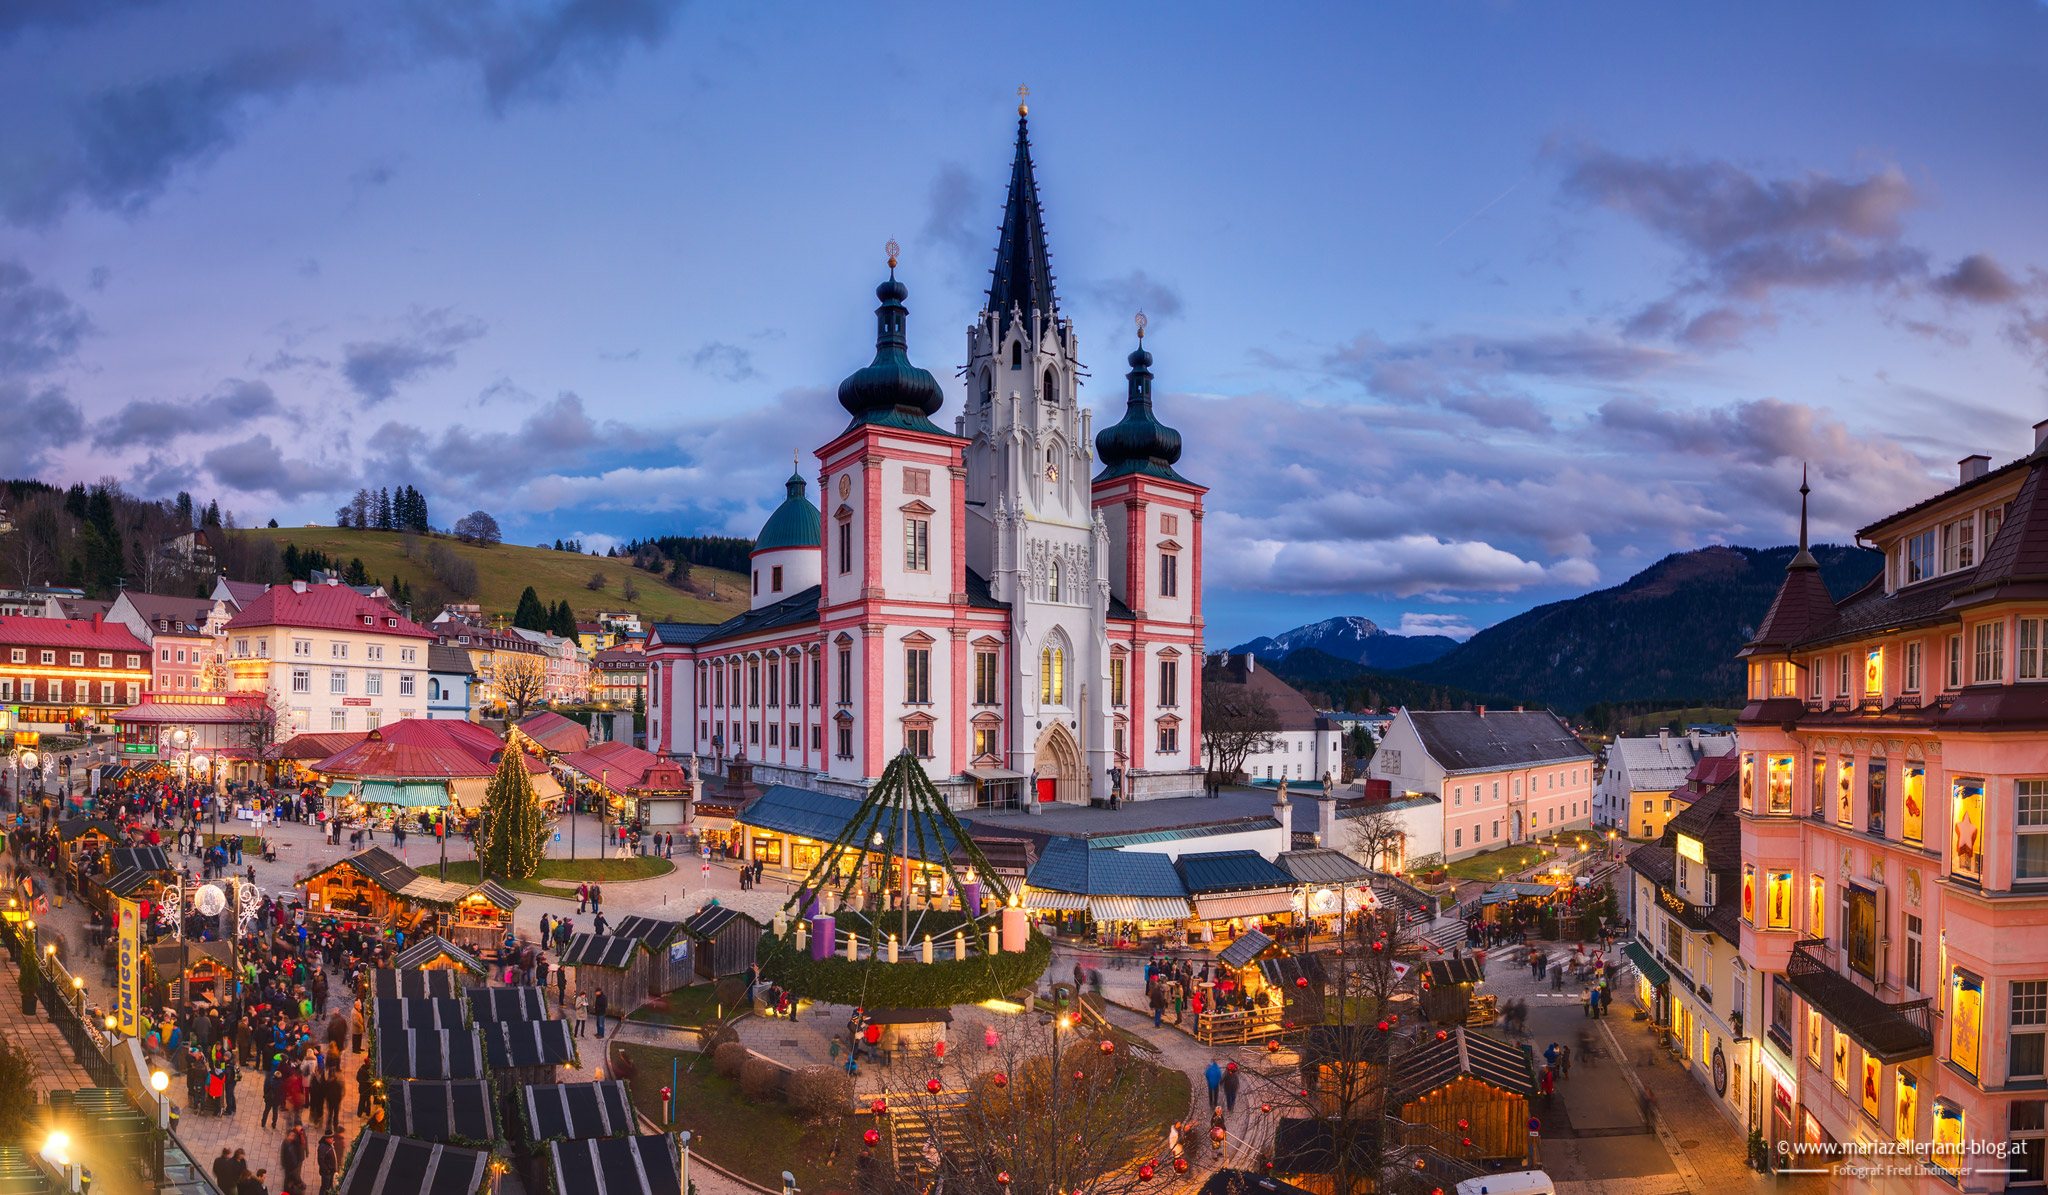 Basilika-Advent-2014-Panorama